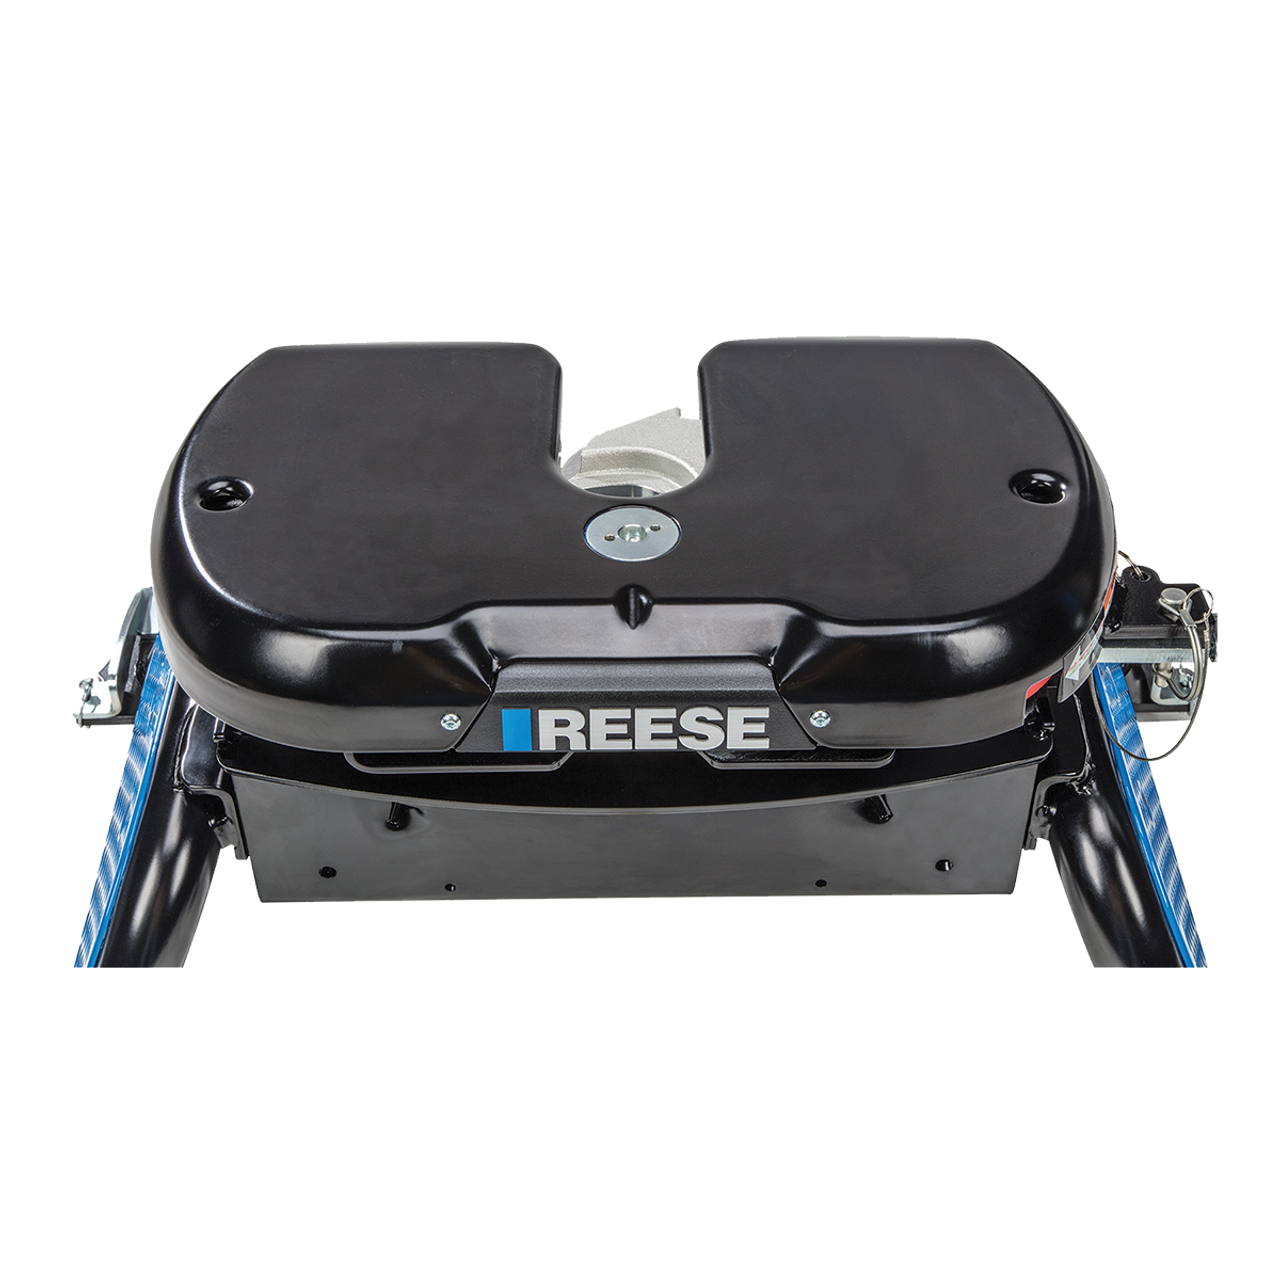 30921 --- Reese™ M5 20K Fifth Wheel Hitch for Ford trucks with OEM puck system